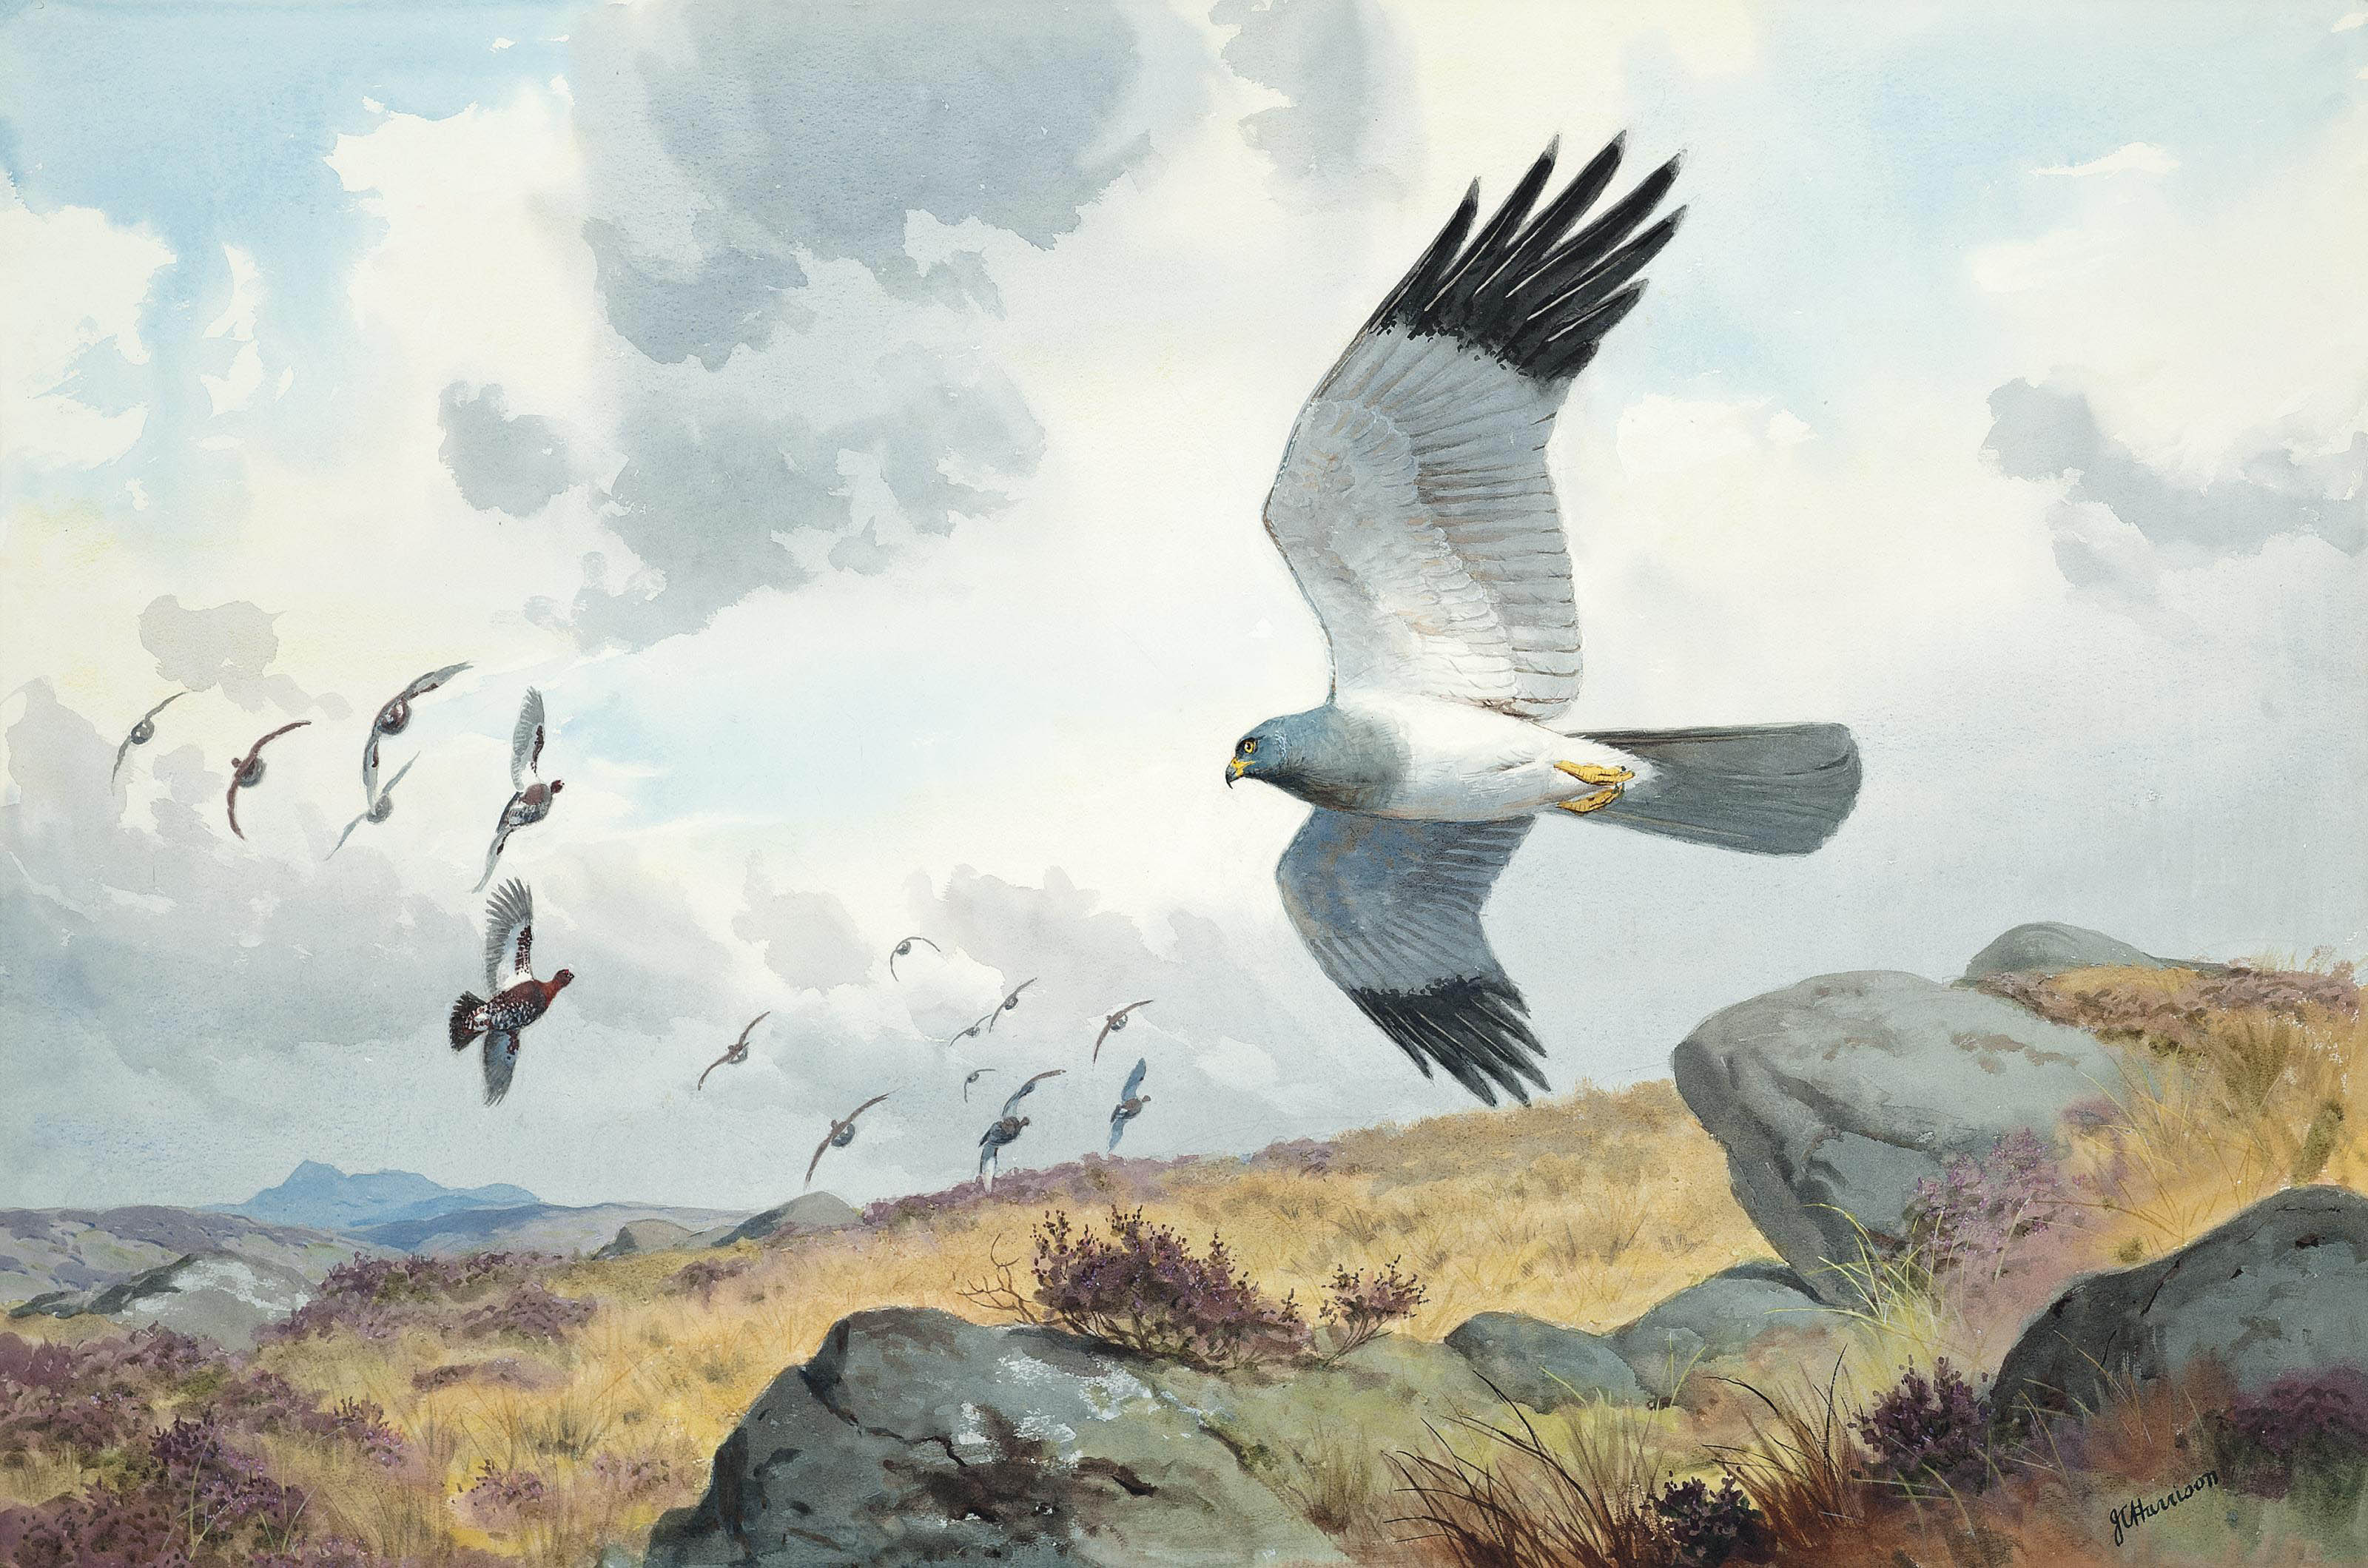 Hen harrier putting up the coveys